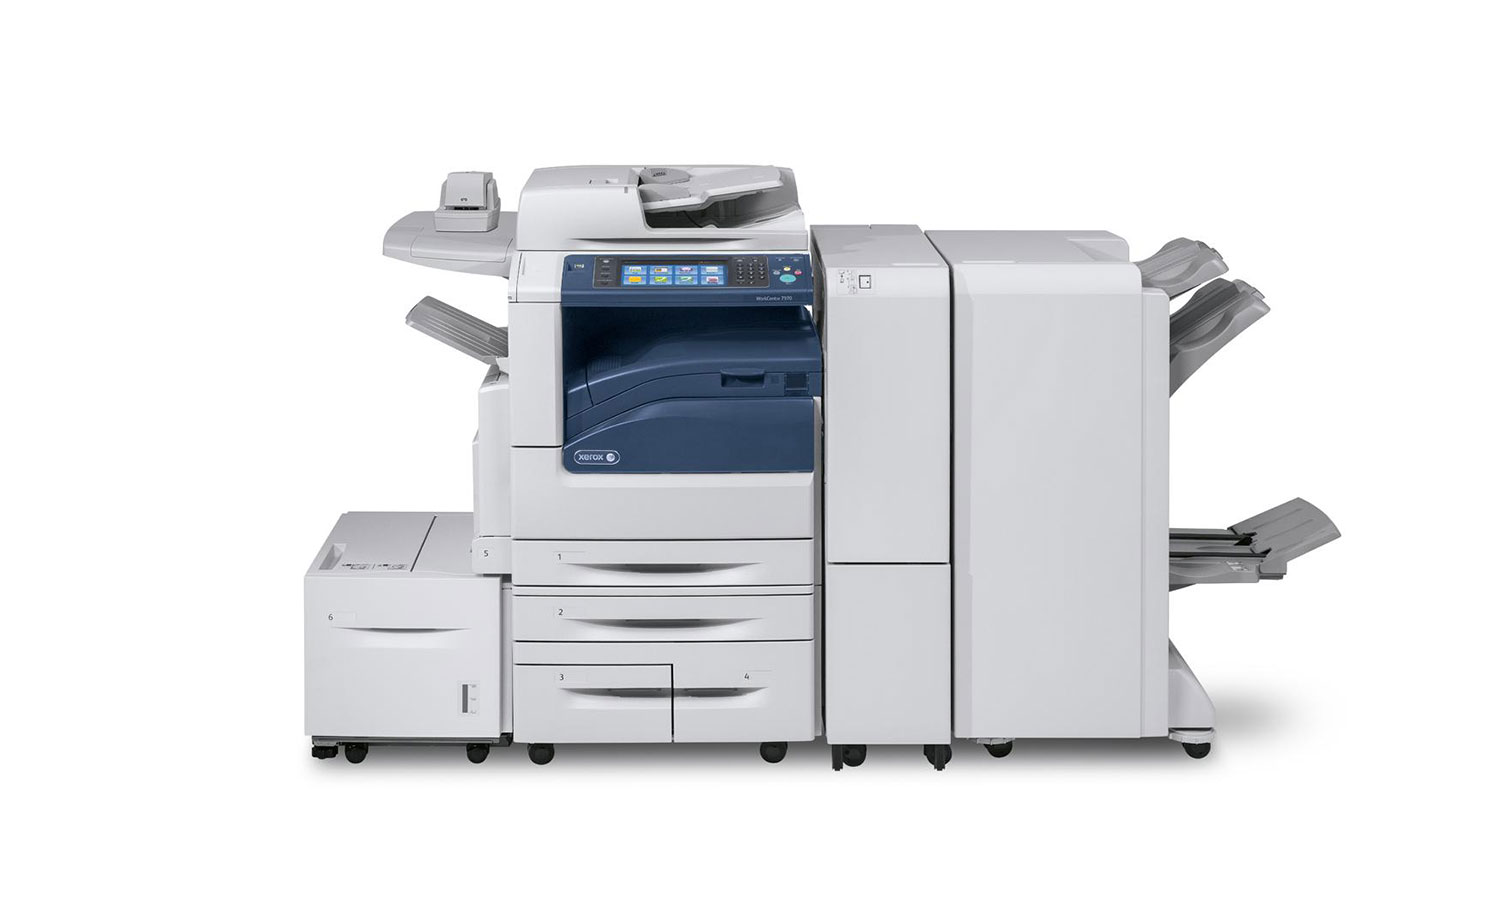 xerox docline copieurs-Docline-Xerox-WorkCentre-5945i-5955i